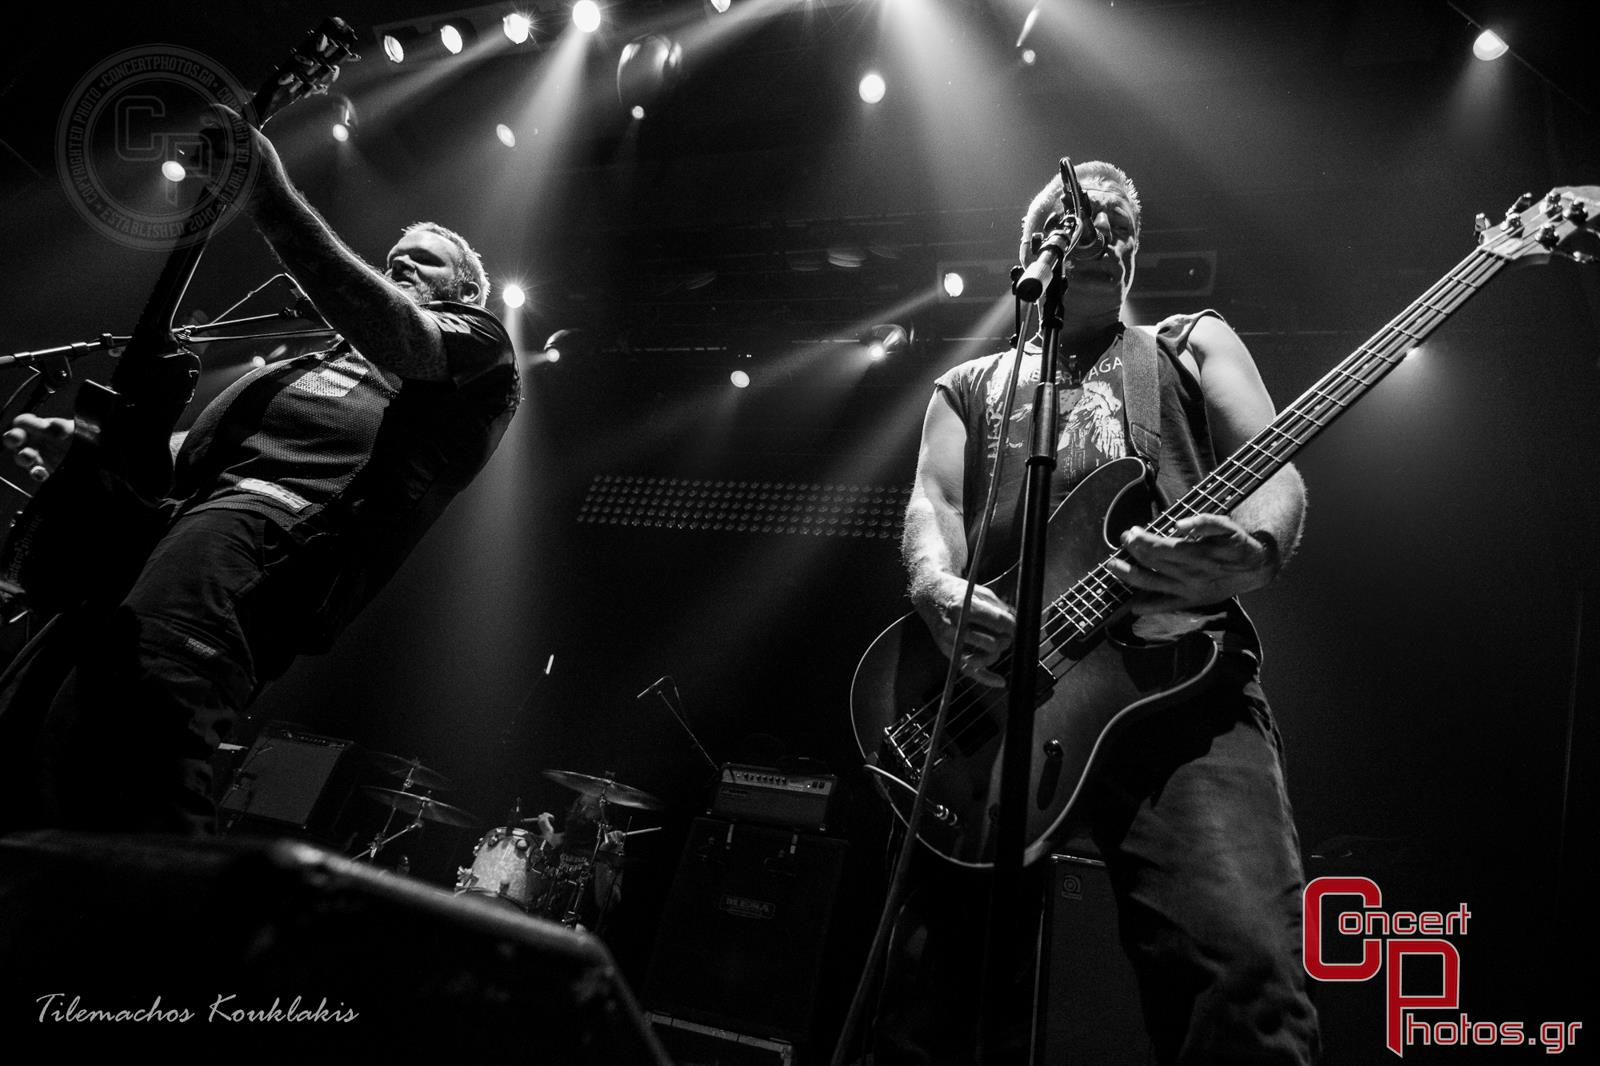 Neurosis-Neurosis photographer:  - concertphotos_20140707_23_56_50-8